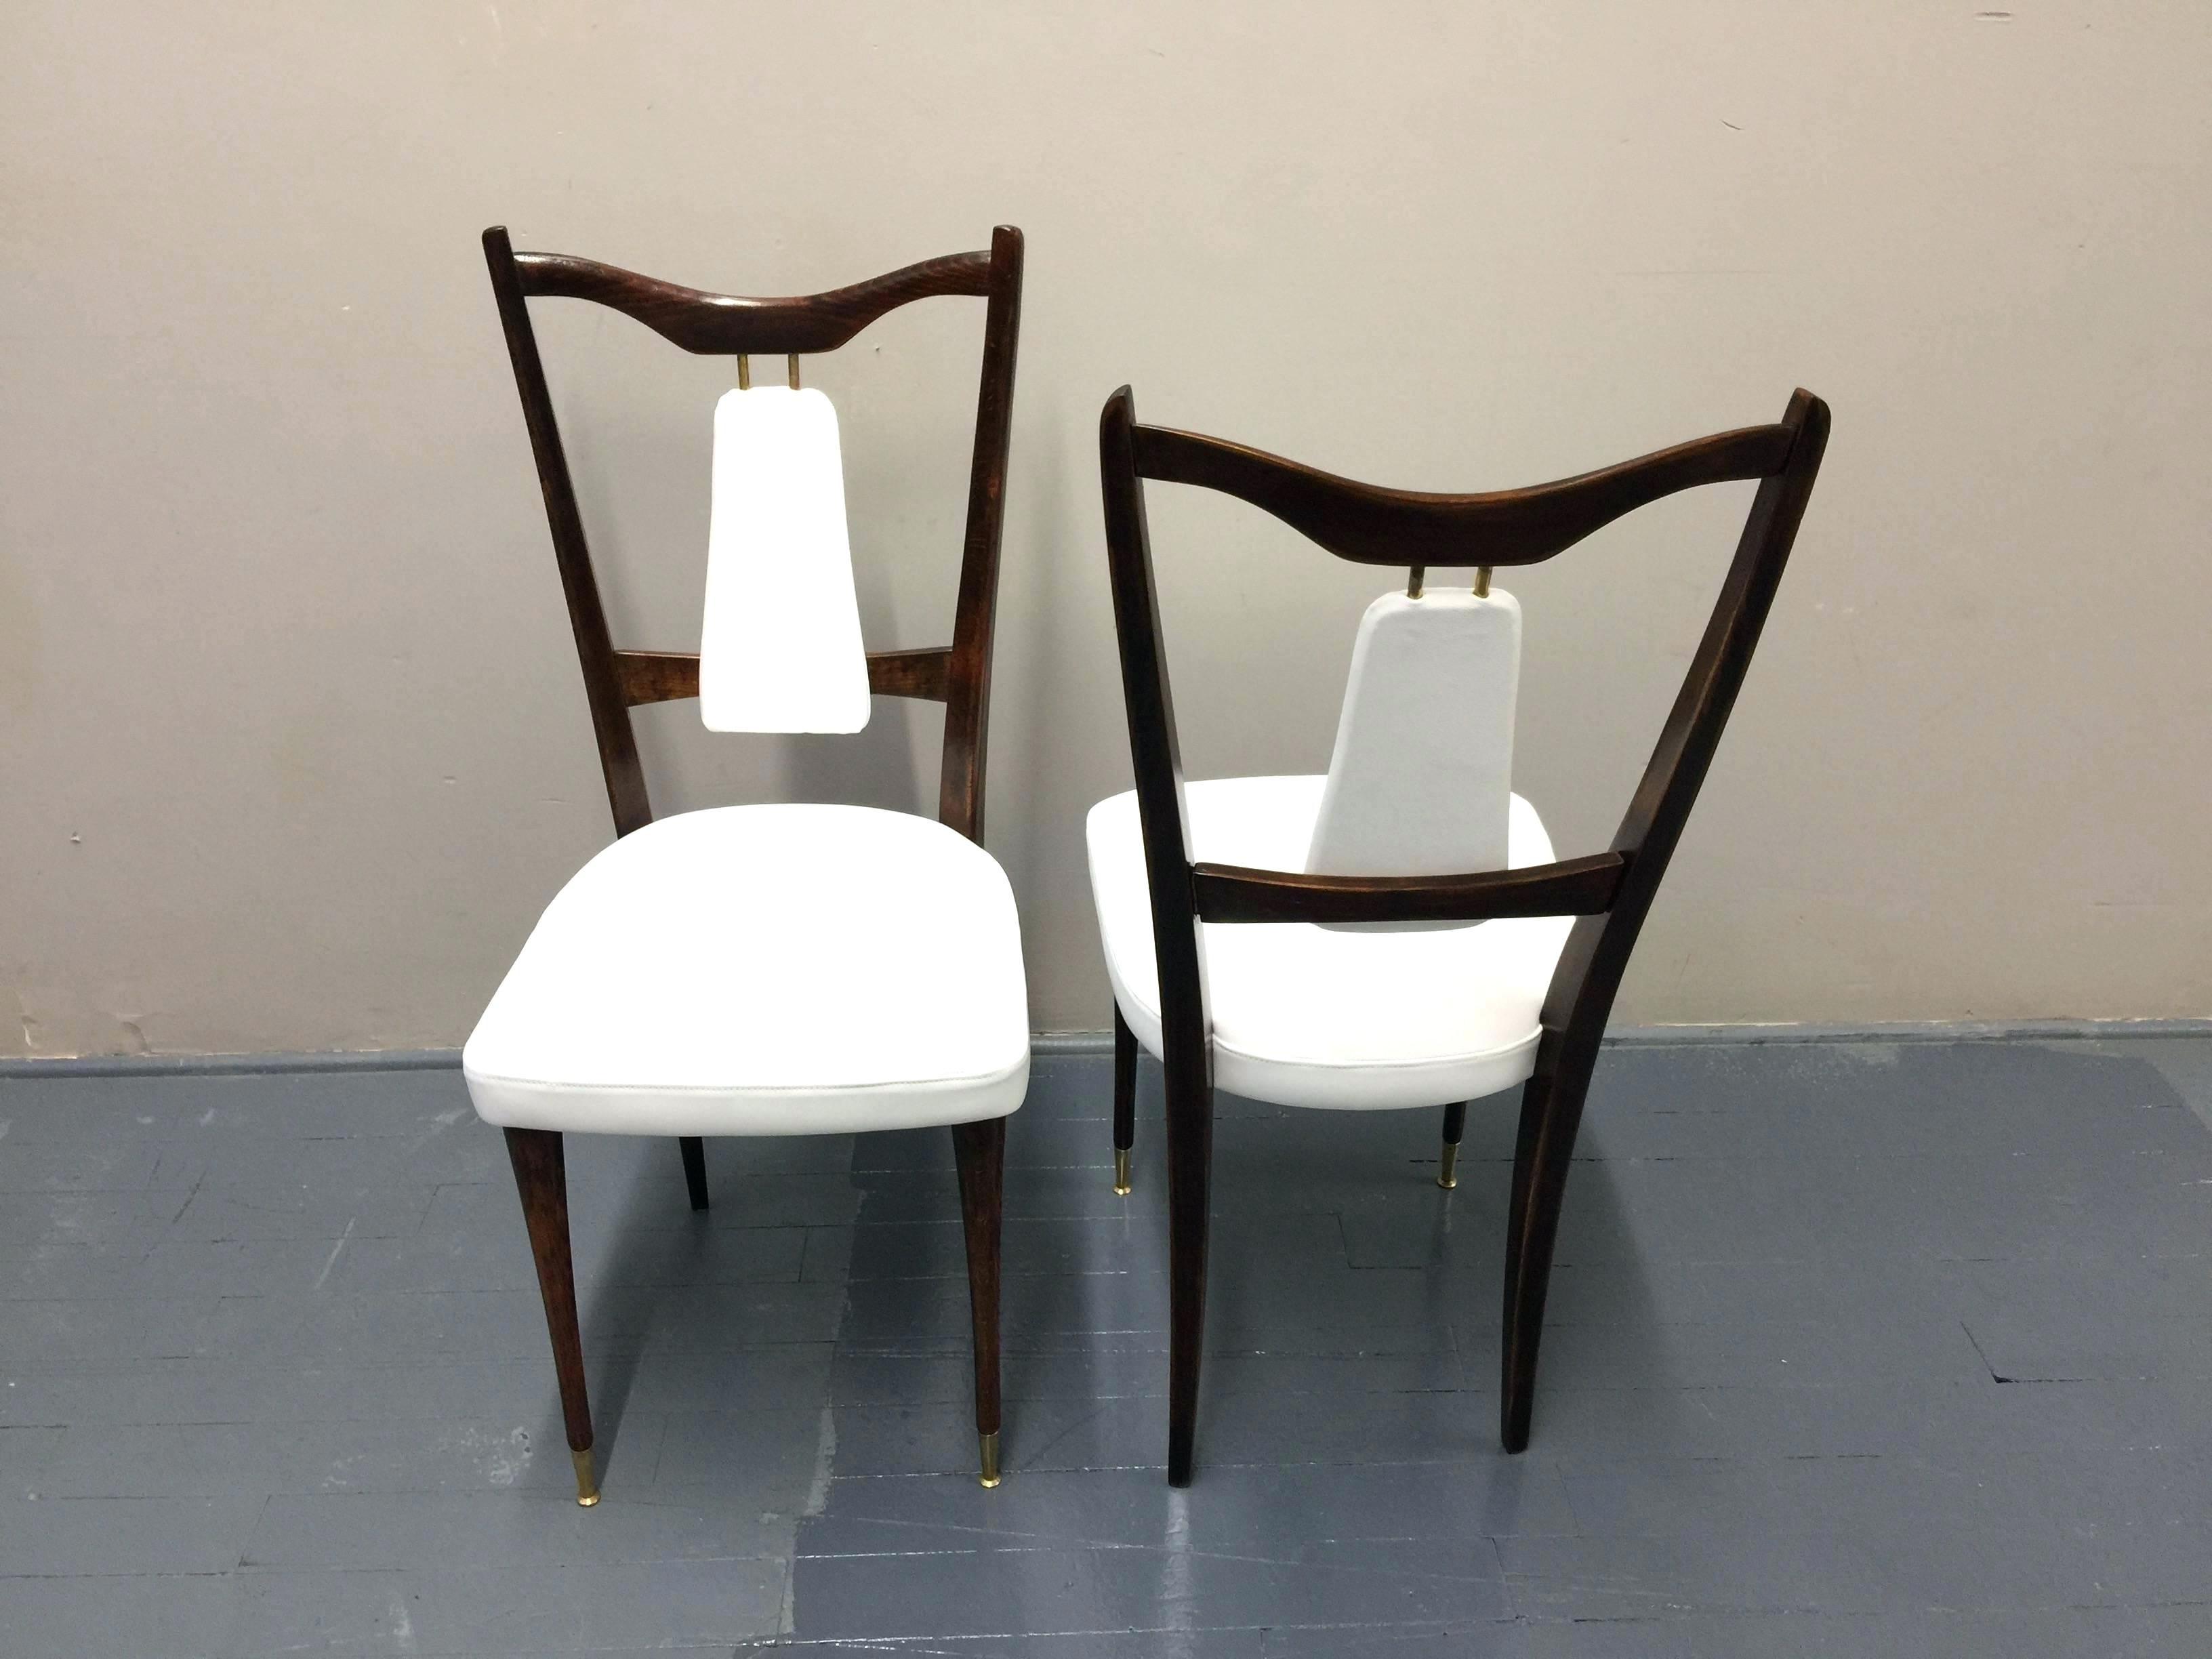 Preferred White Leather Dining Room Chairs Regarding White Leather Dining Chairs Modern Dinner Chair Beautiful Faux Room (View 20 of 25)